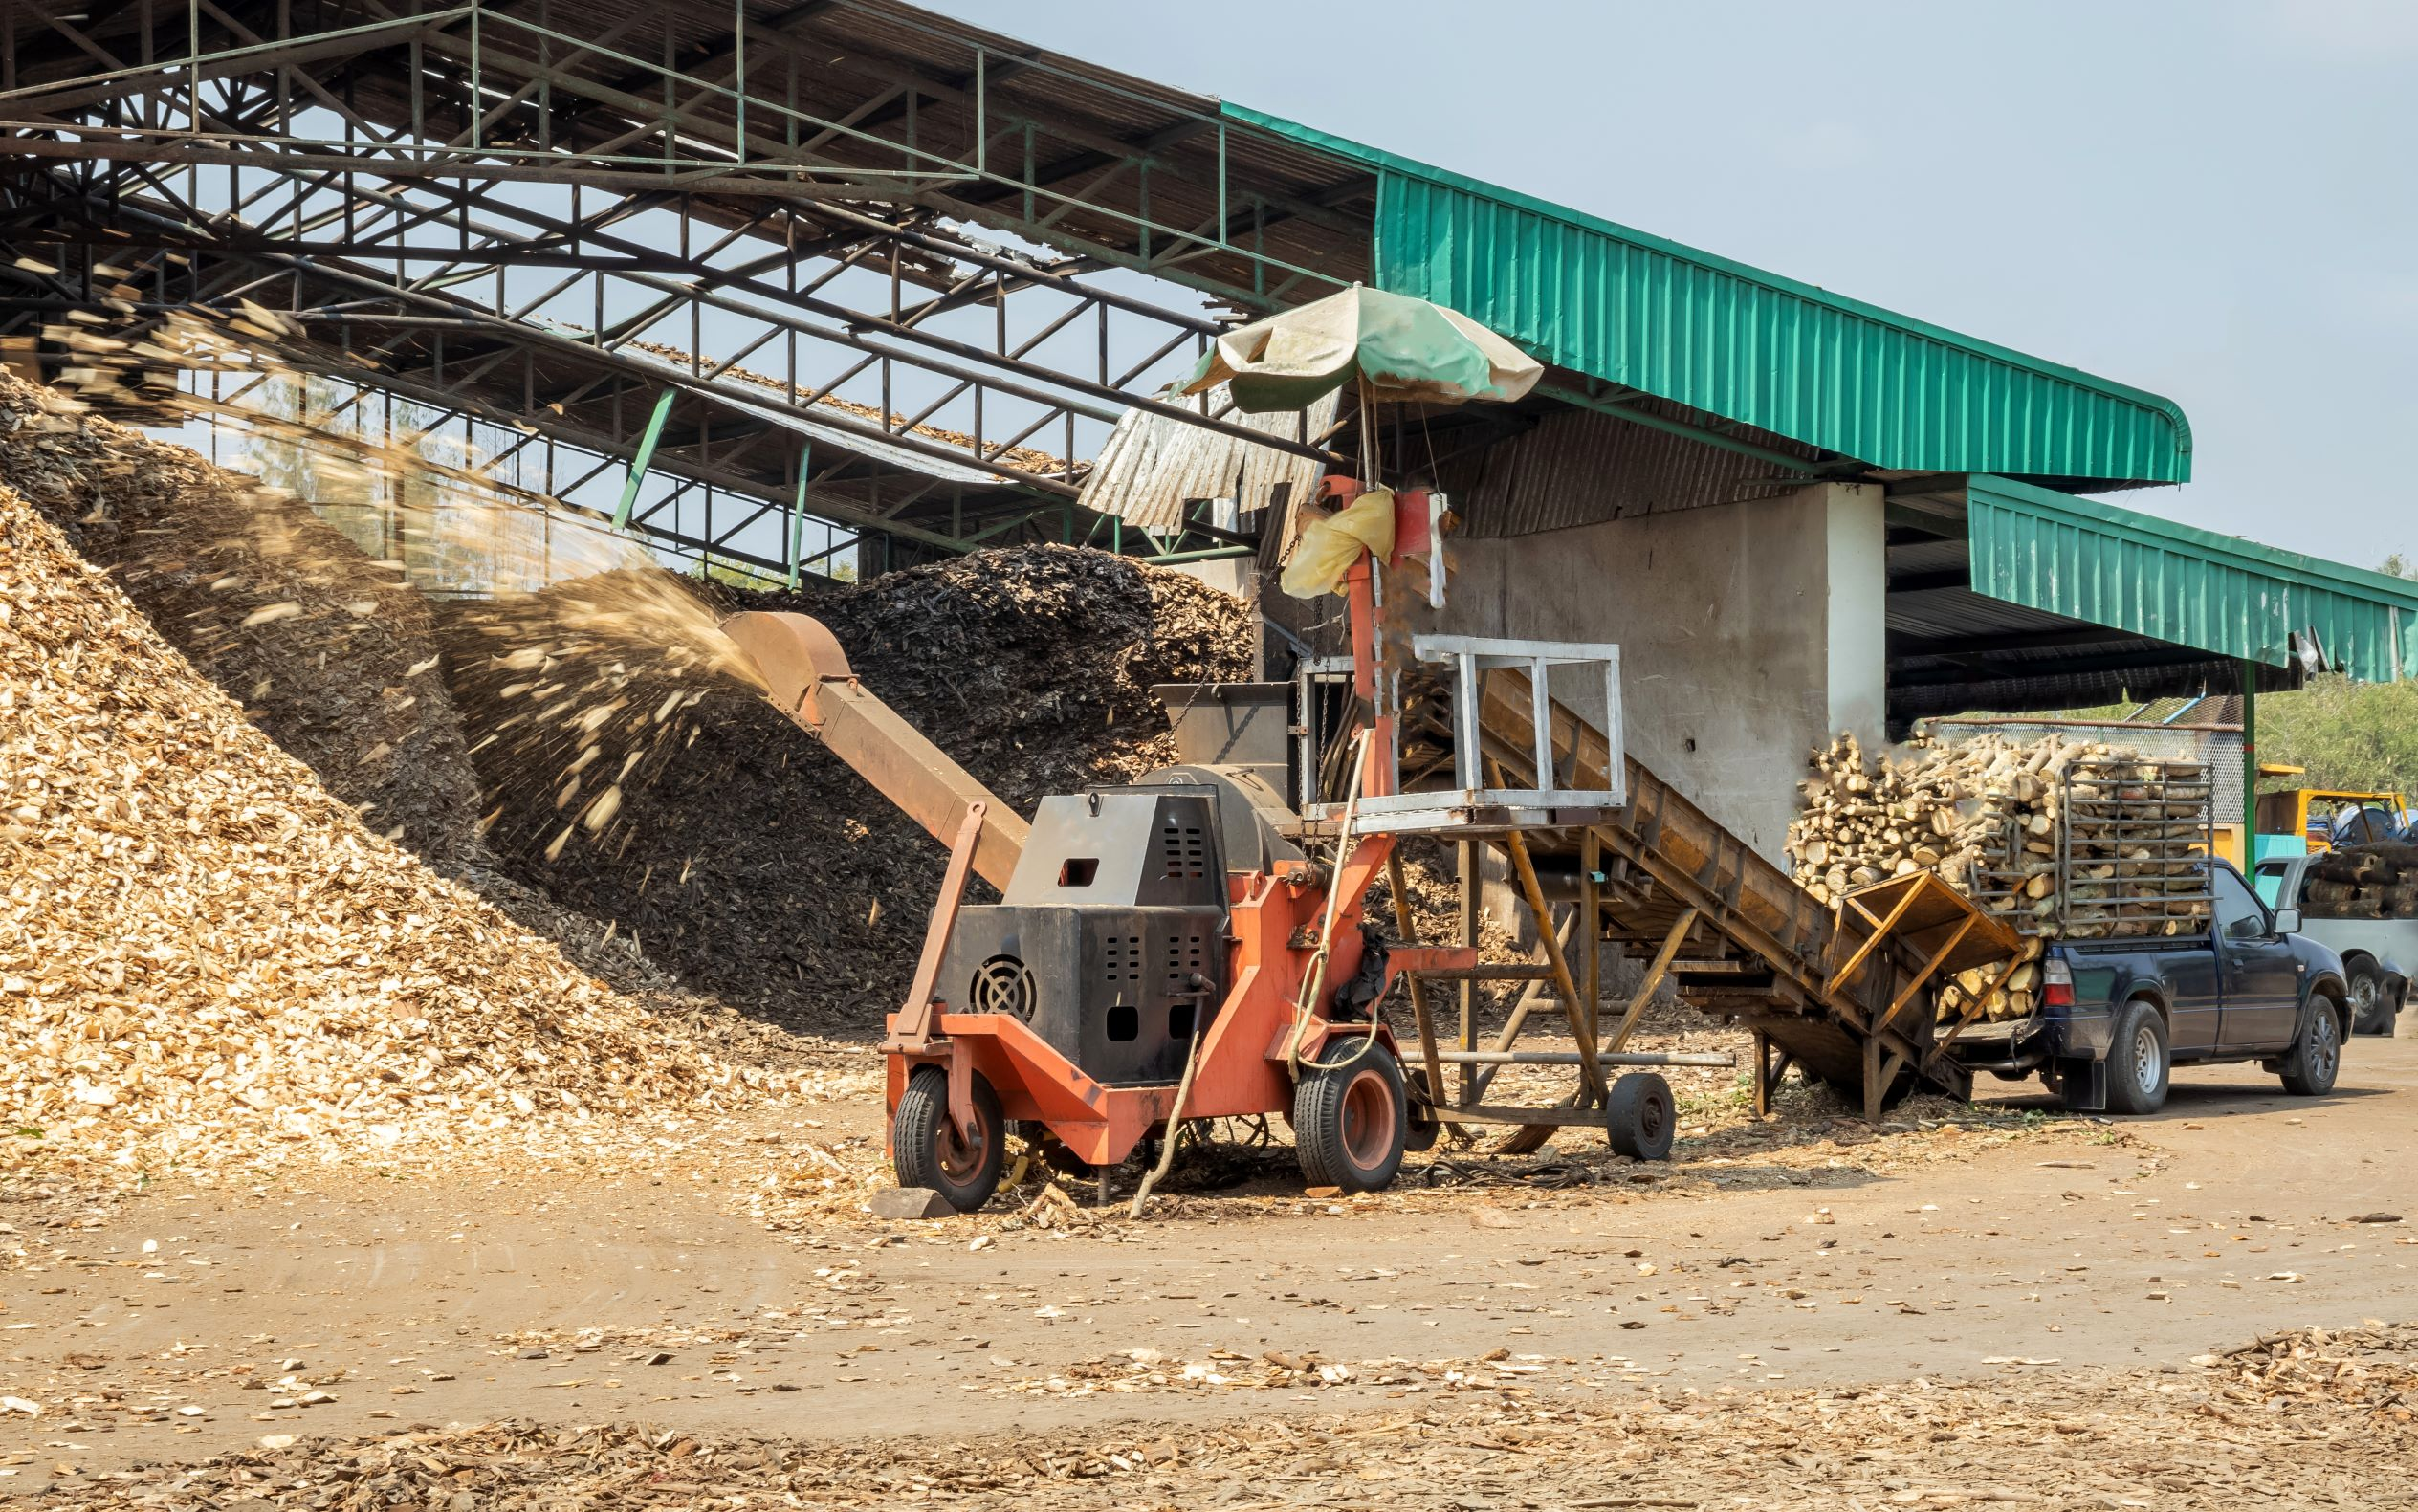 Tadweer opens licensing opportunities for wood waste recovery and recycling facilities